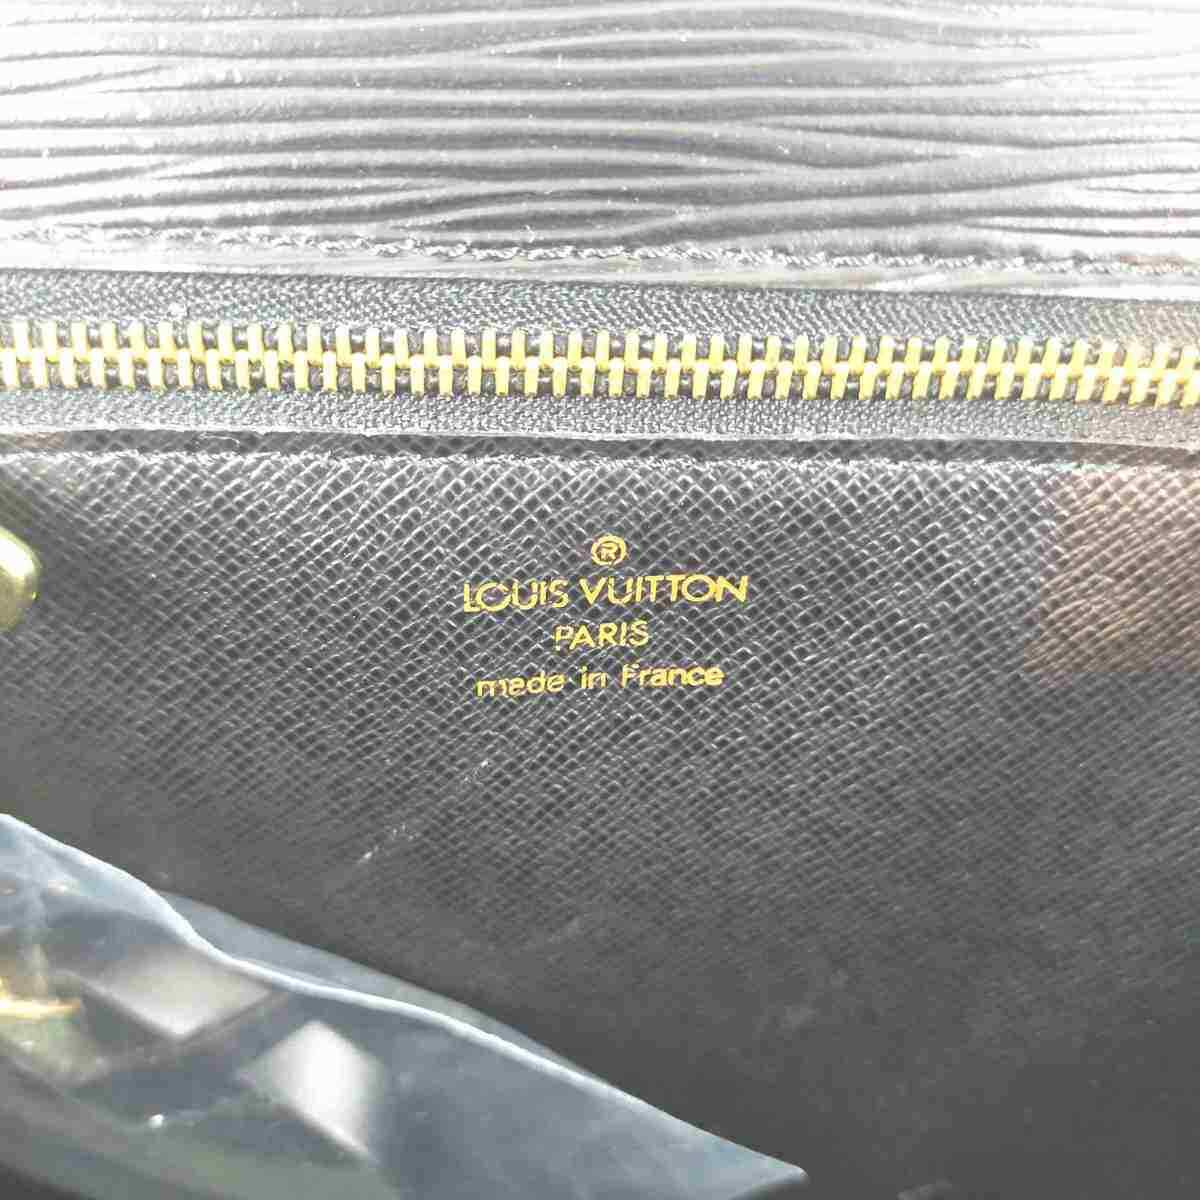 Louis Vuitton Monceau M52122 Black Epi Handbag 11503